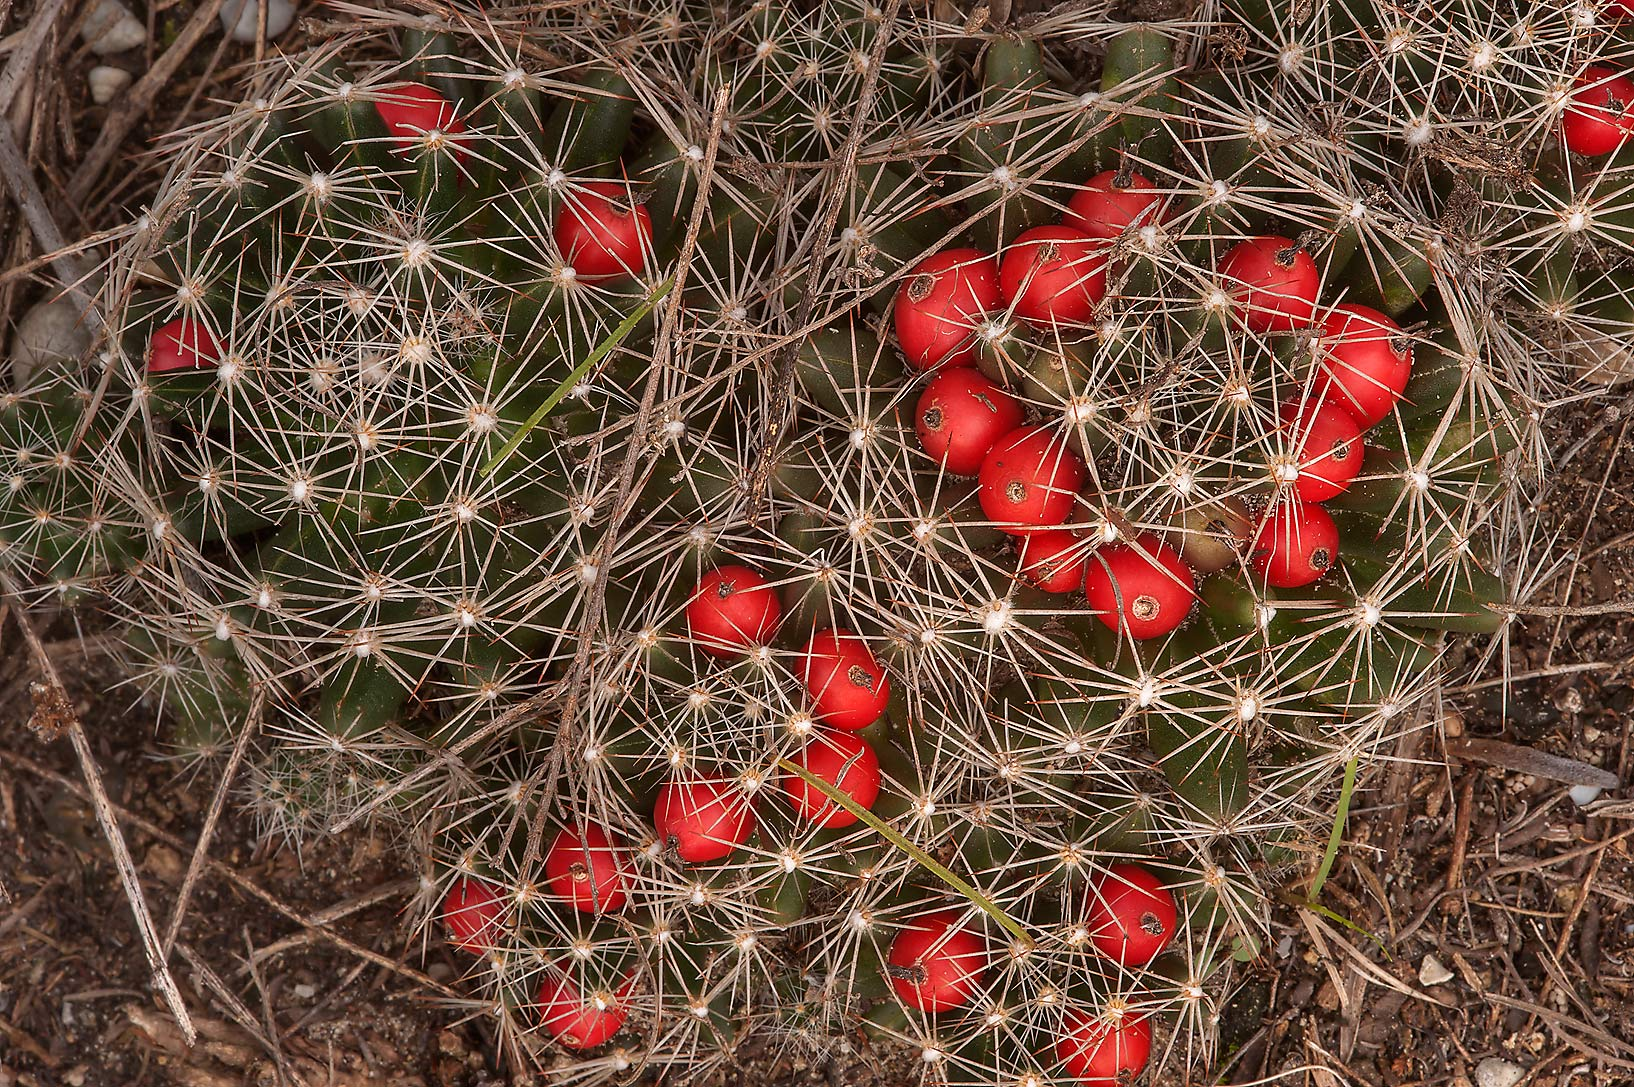 Fruits of Nipple cactus (Missouri foxtail cactus...at FM Rd. 3090 near Navasota. Texas